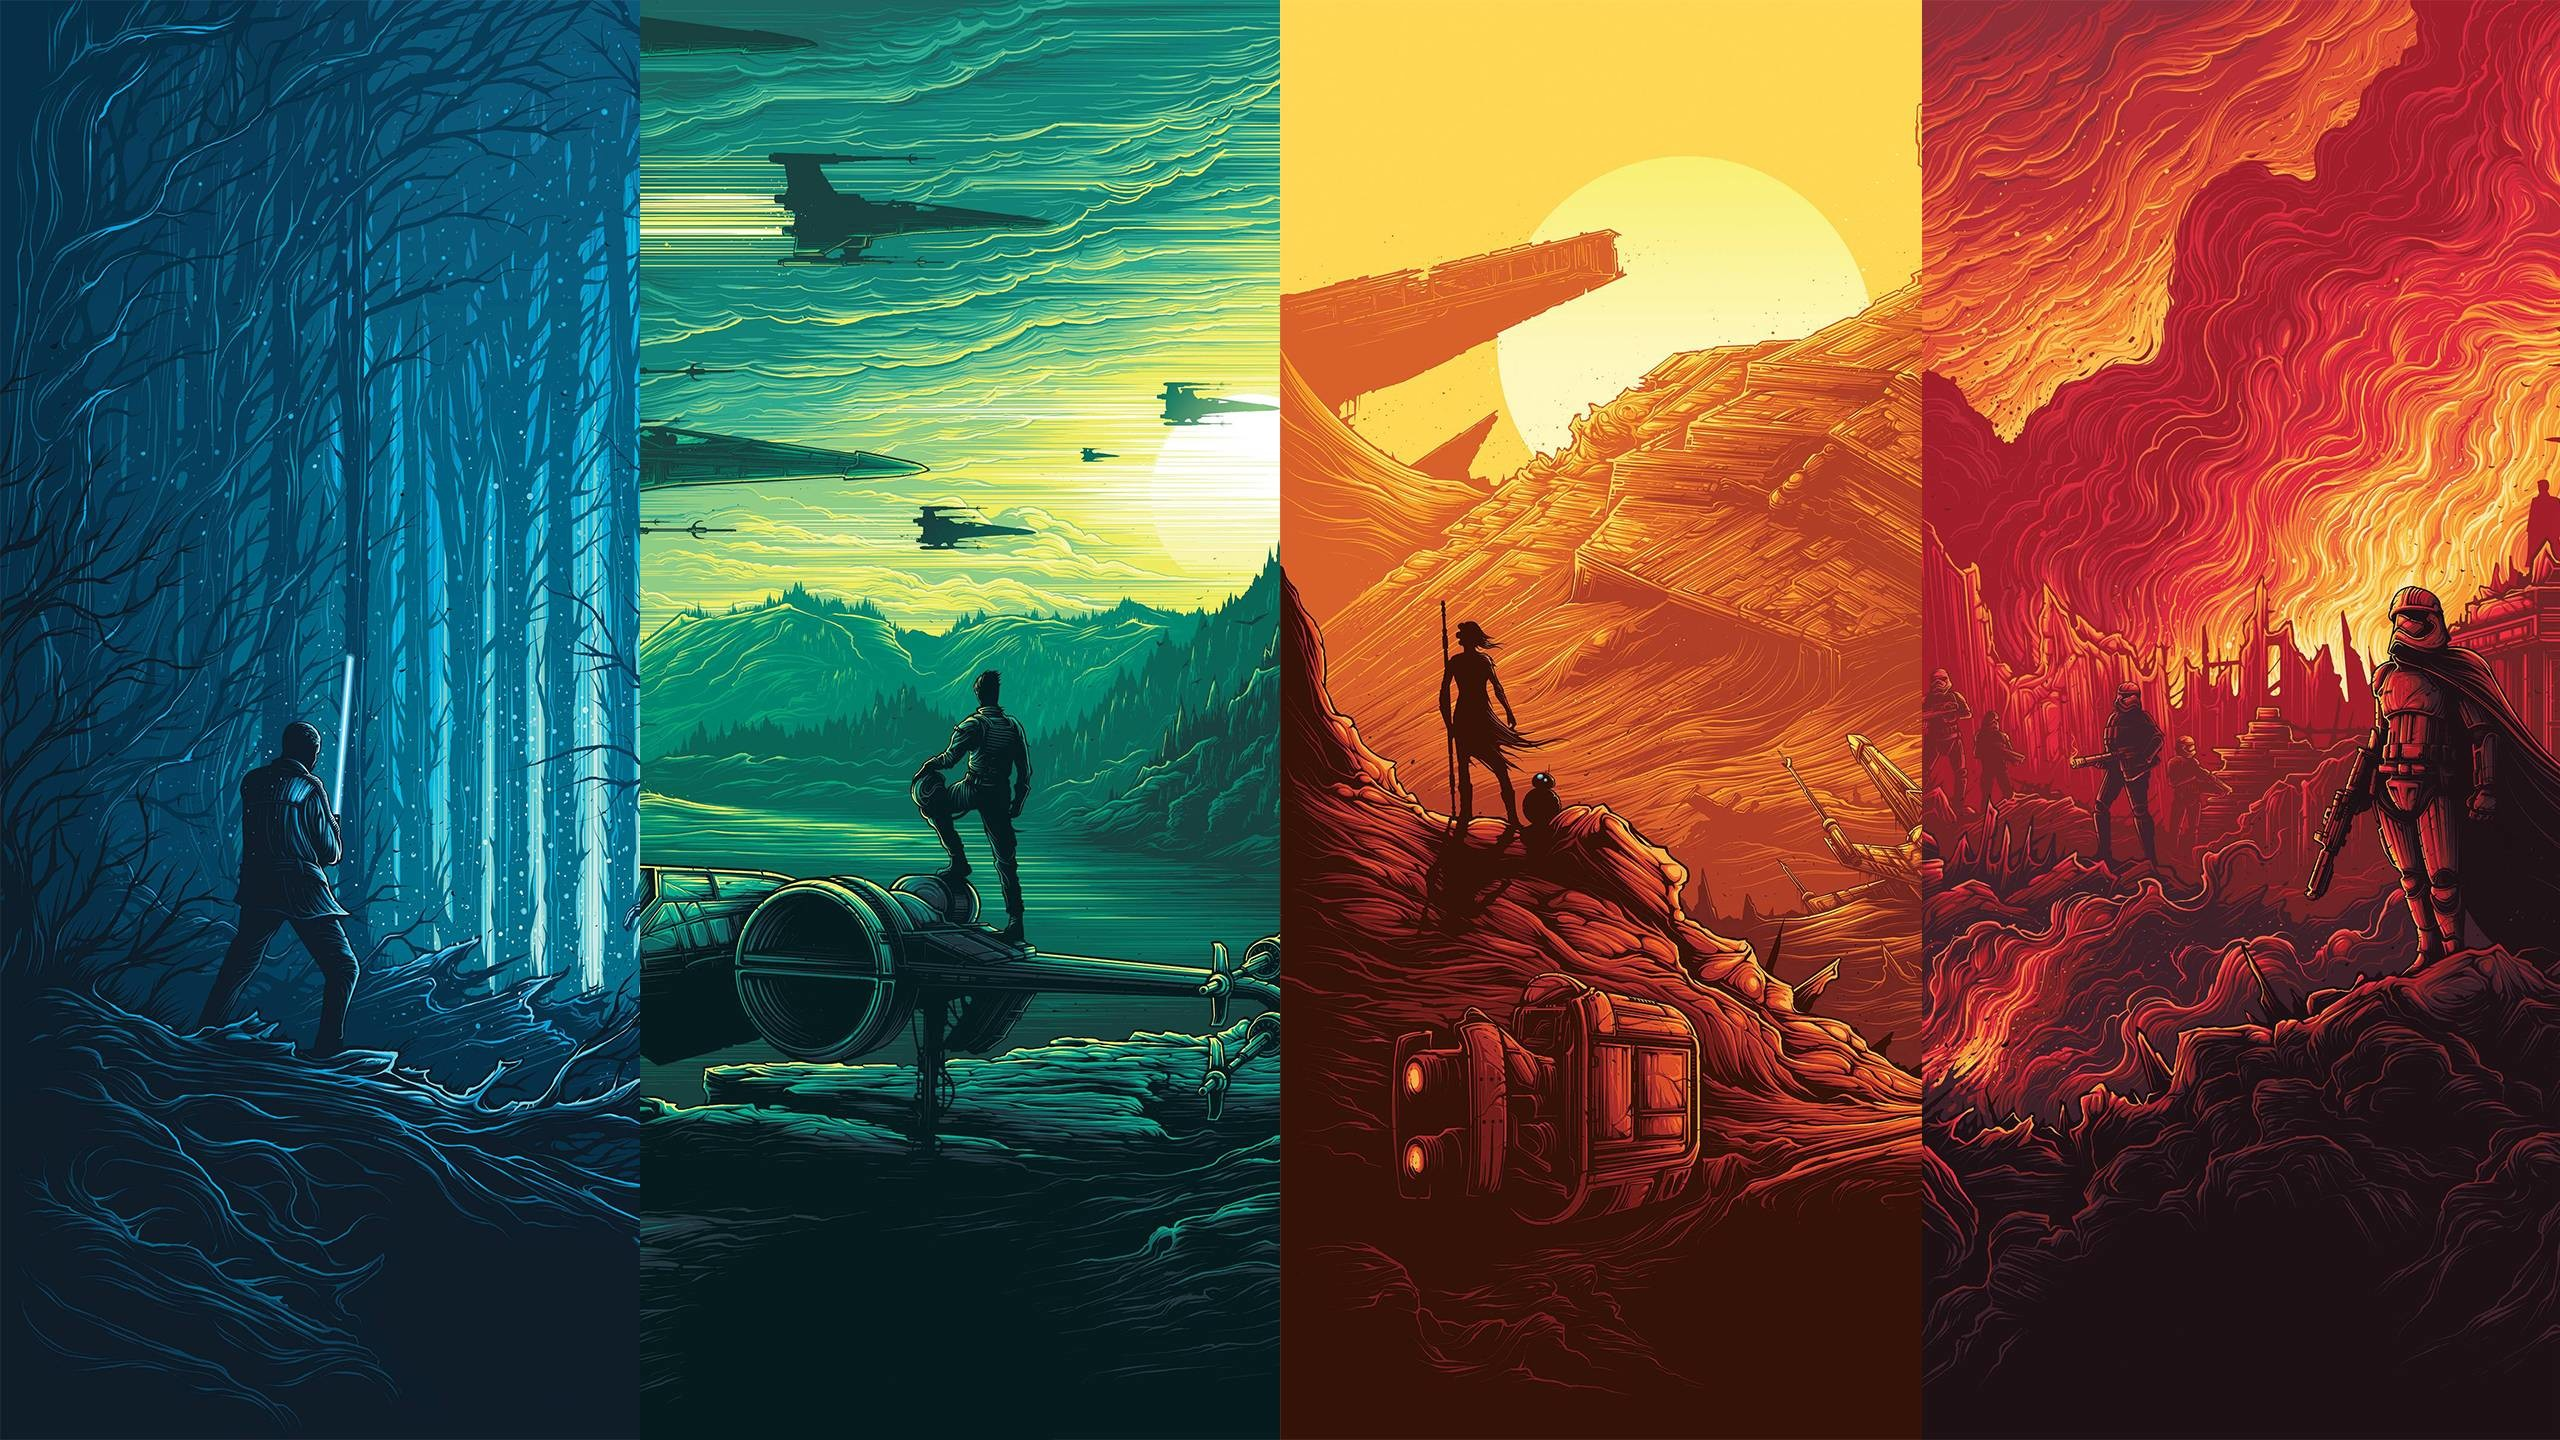 Tiny Star Wars Wallpaper collection.